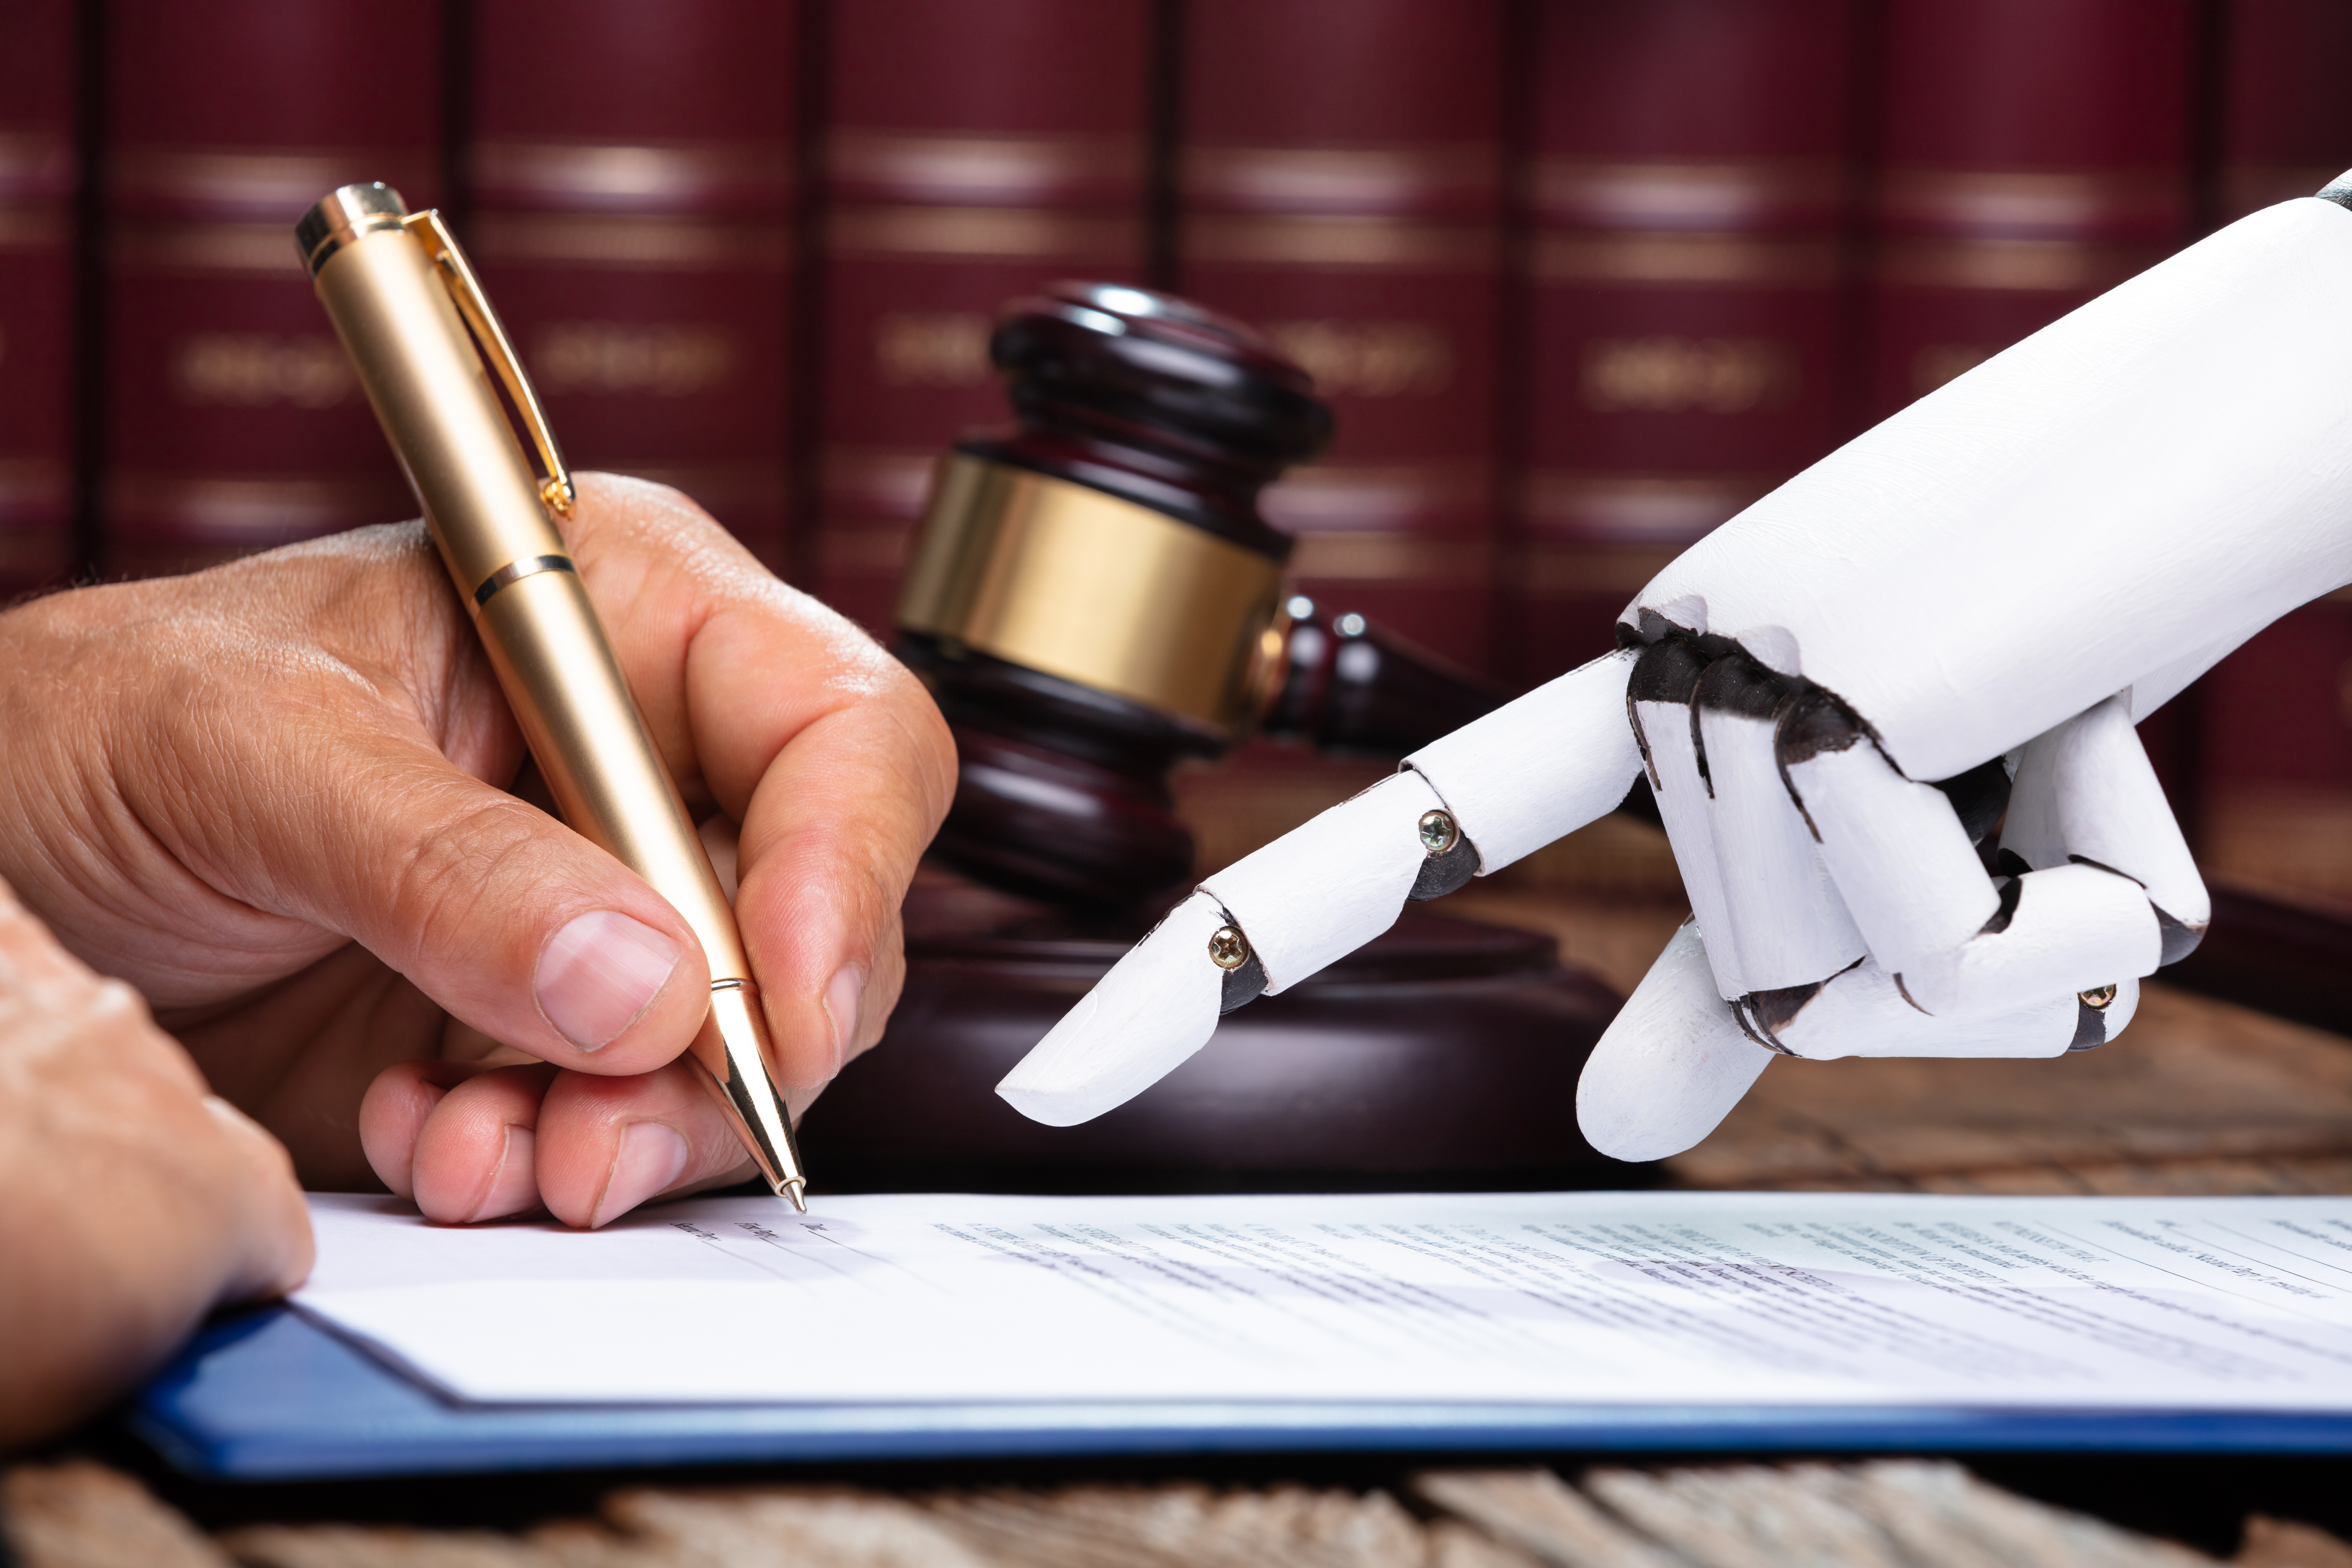 A robot hand helps a human hand sign a law document.